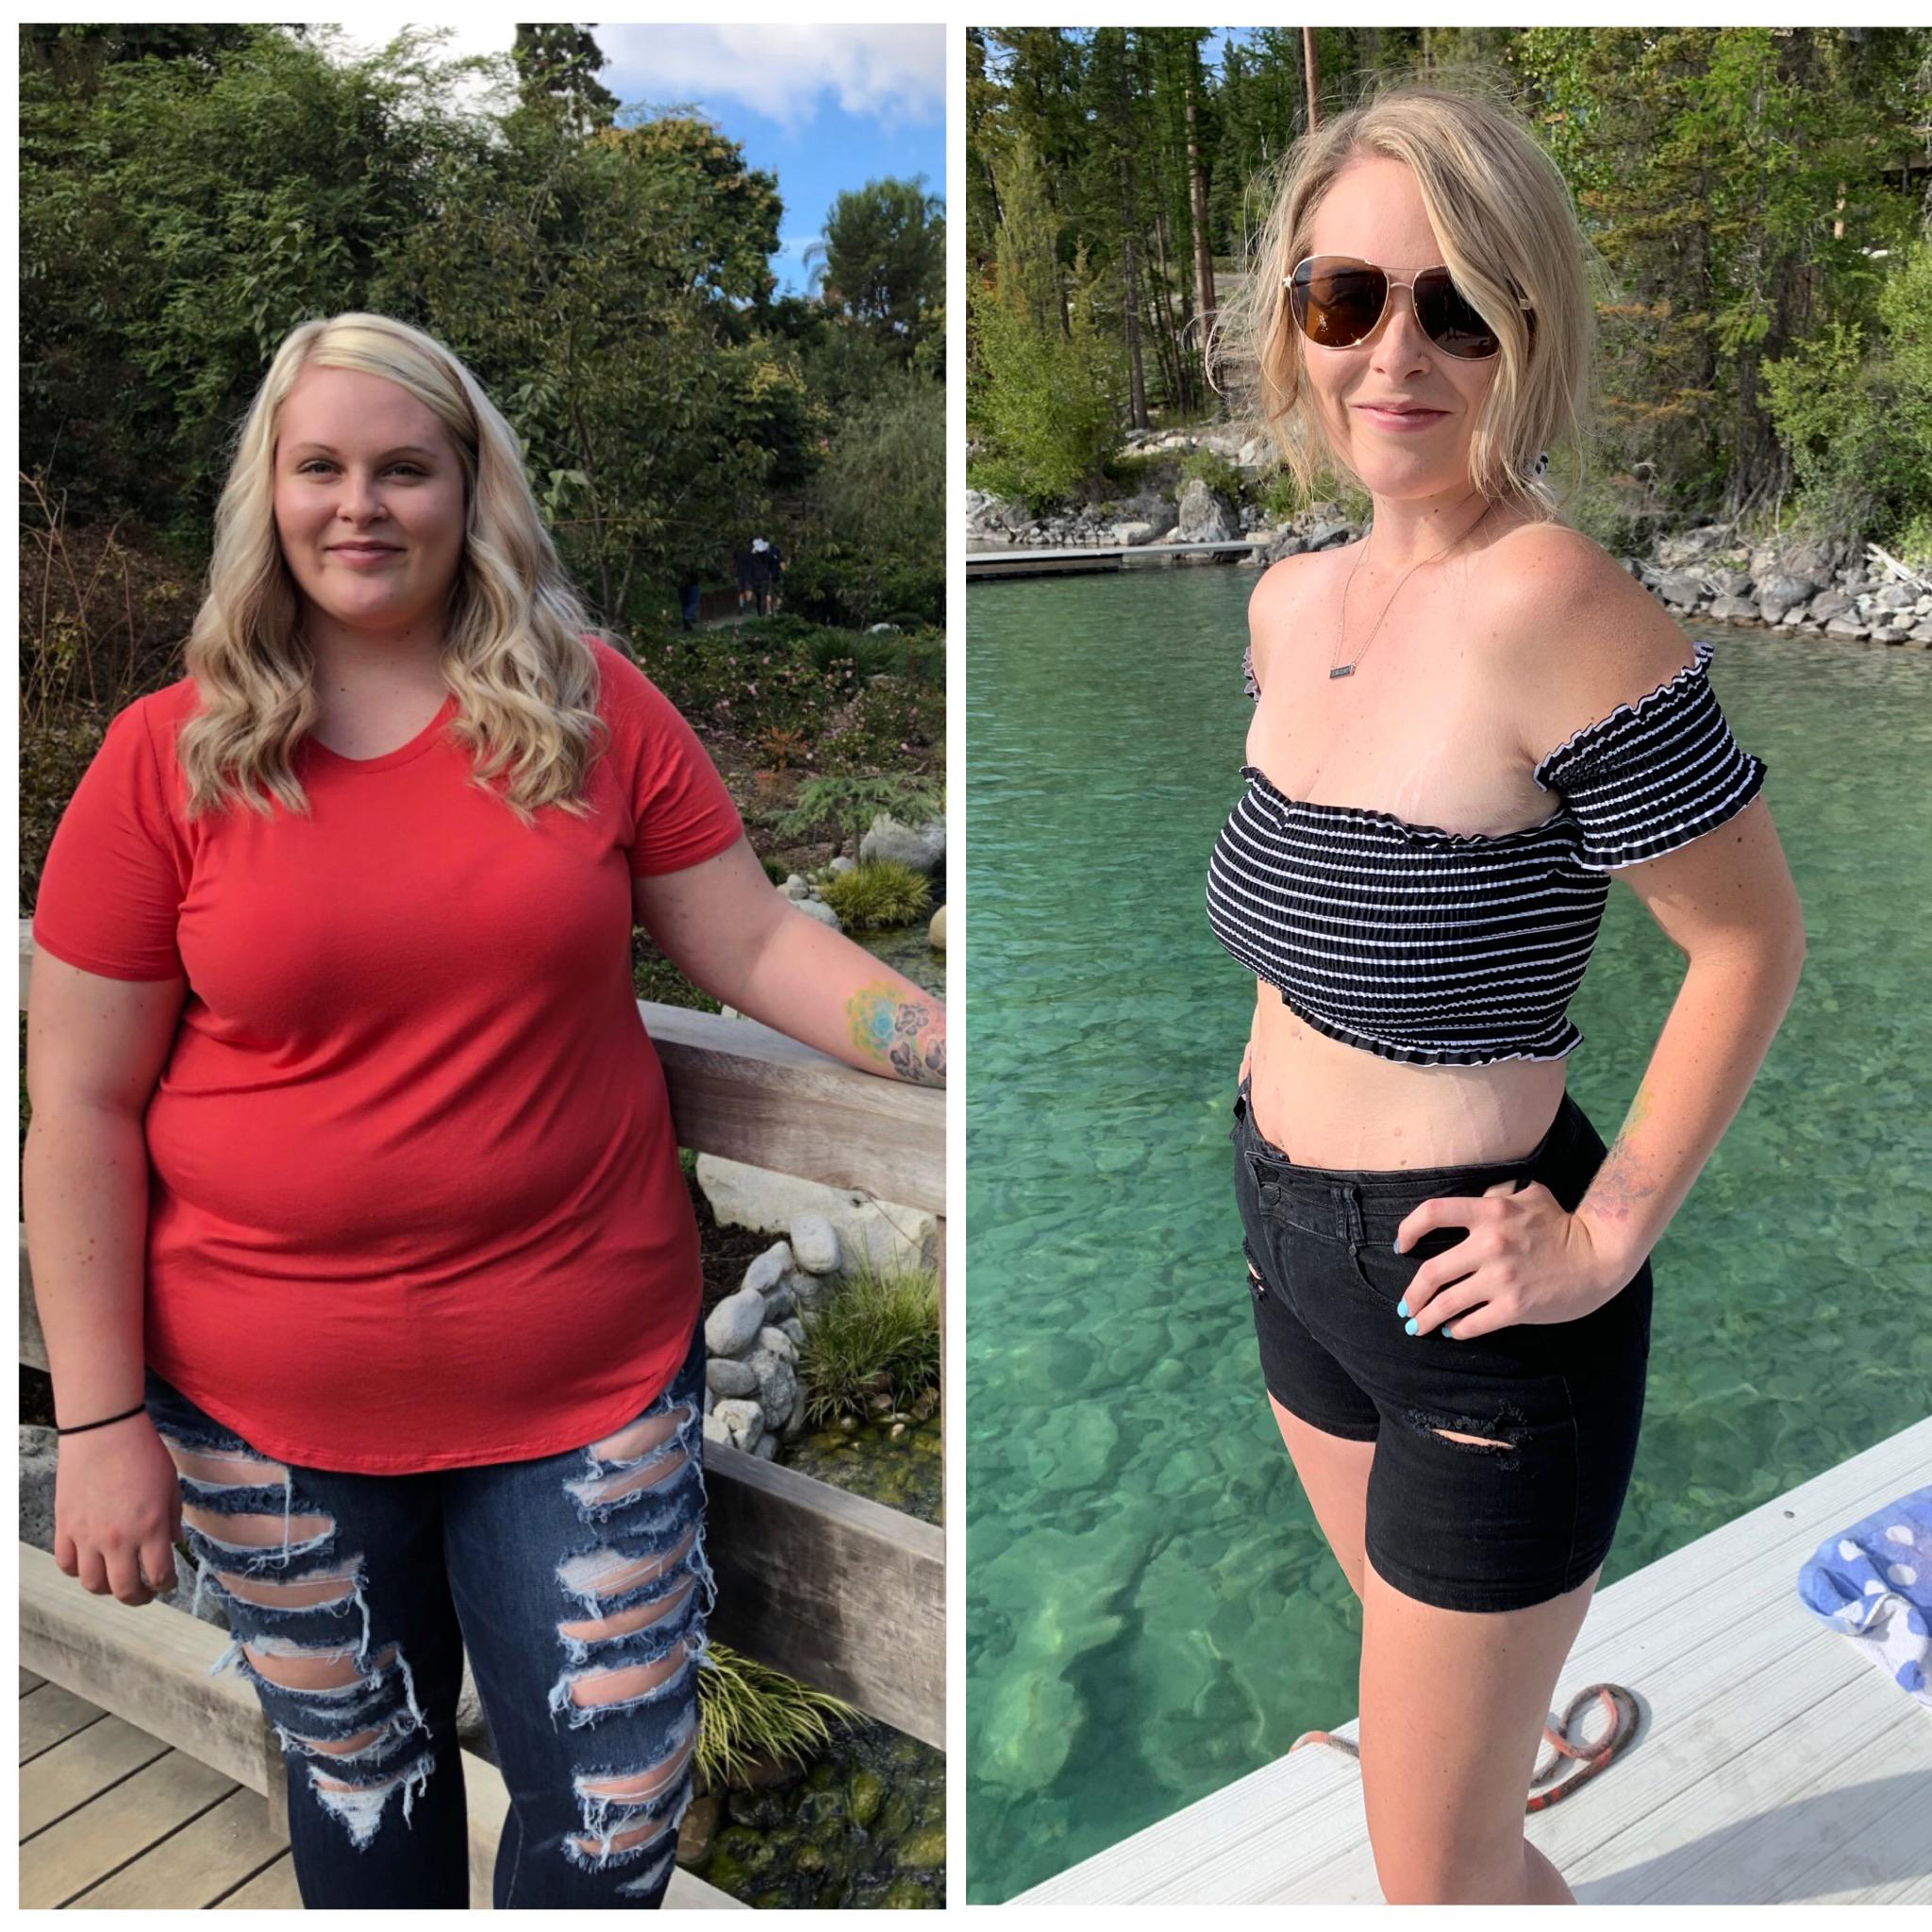 5'6 Female Before and After 114 lbs Fat Loss 272 lbs to 158 lbs